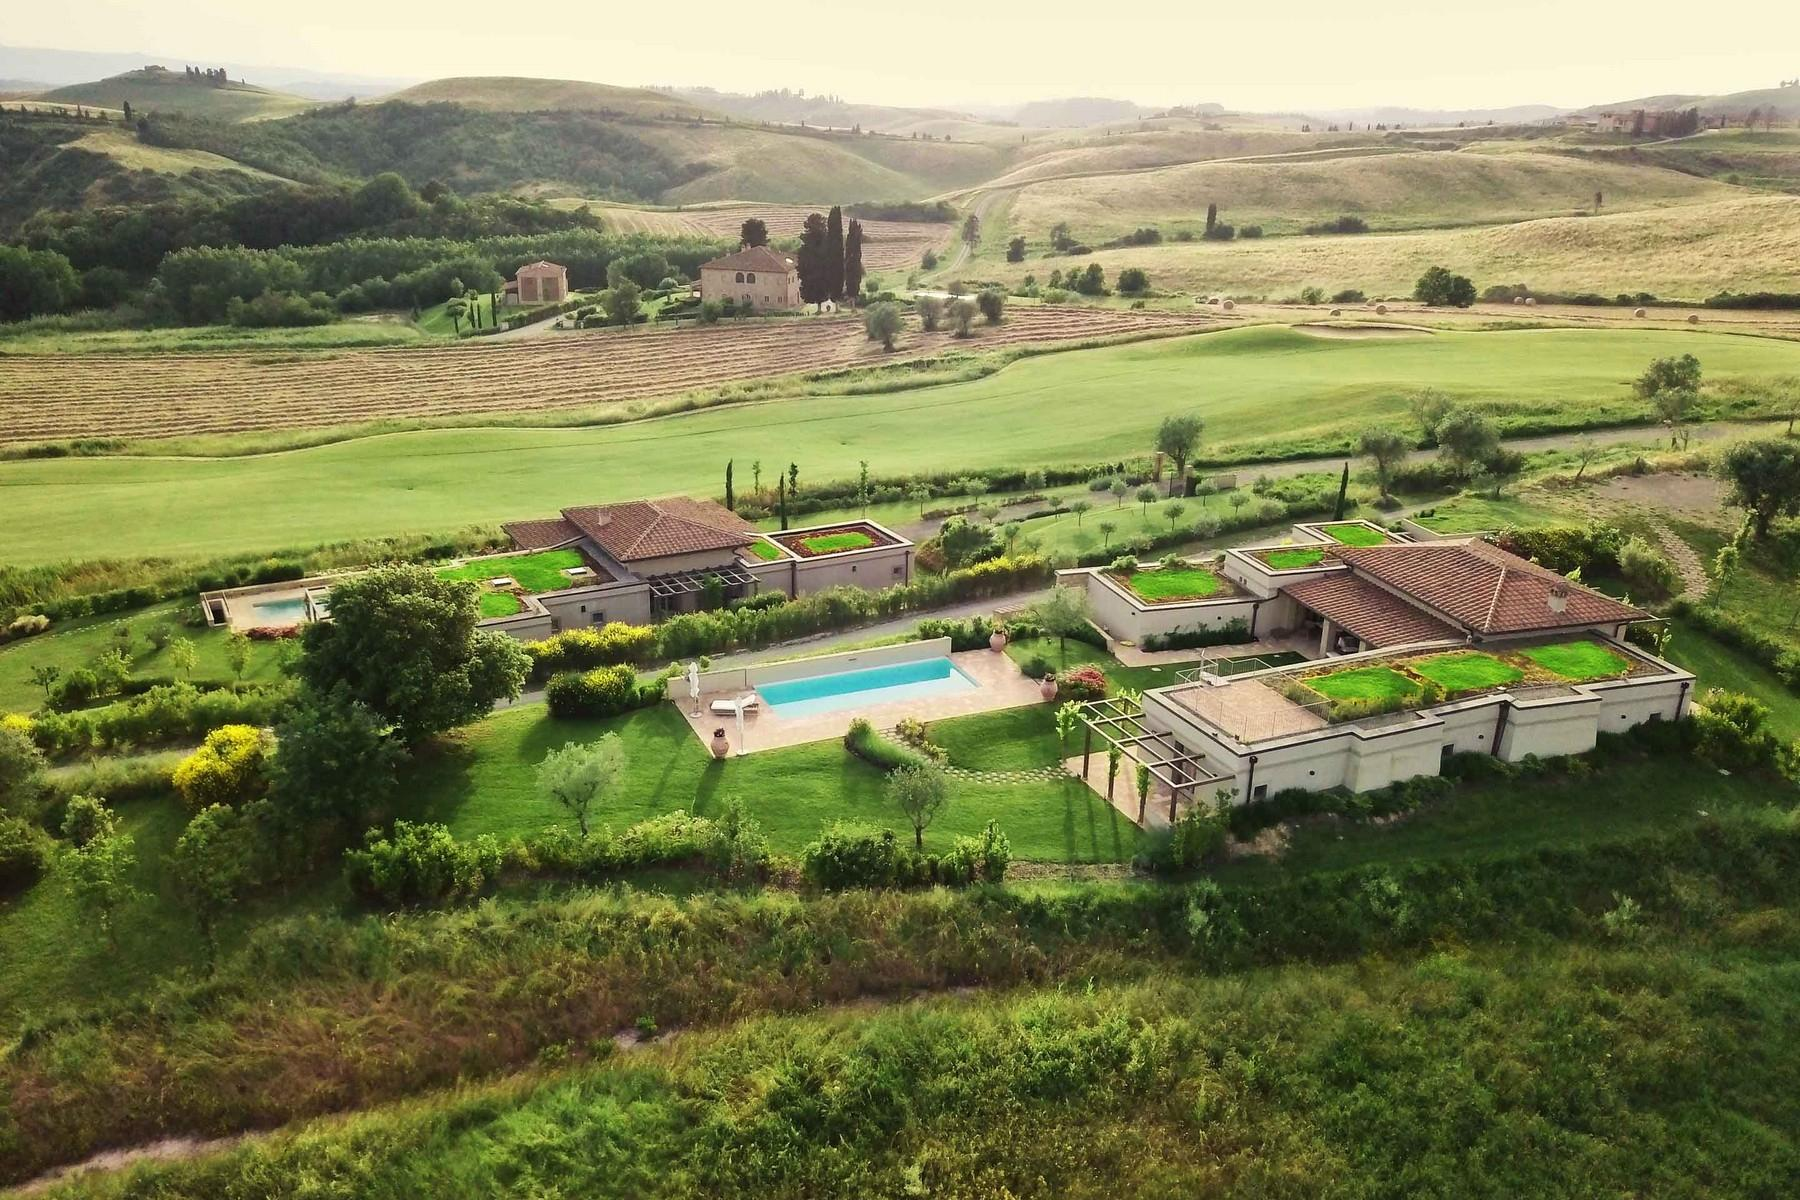 Marvellous new build villas in the Tuscan countryside - 16